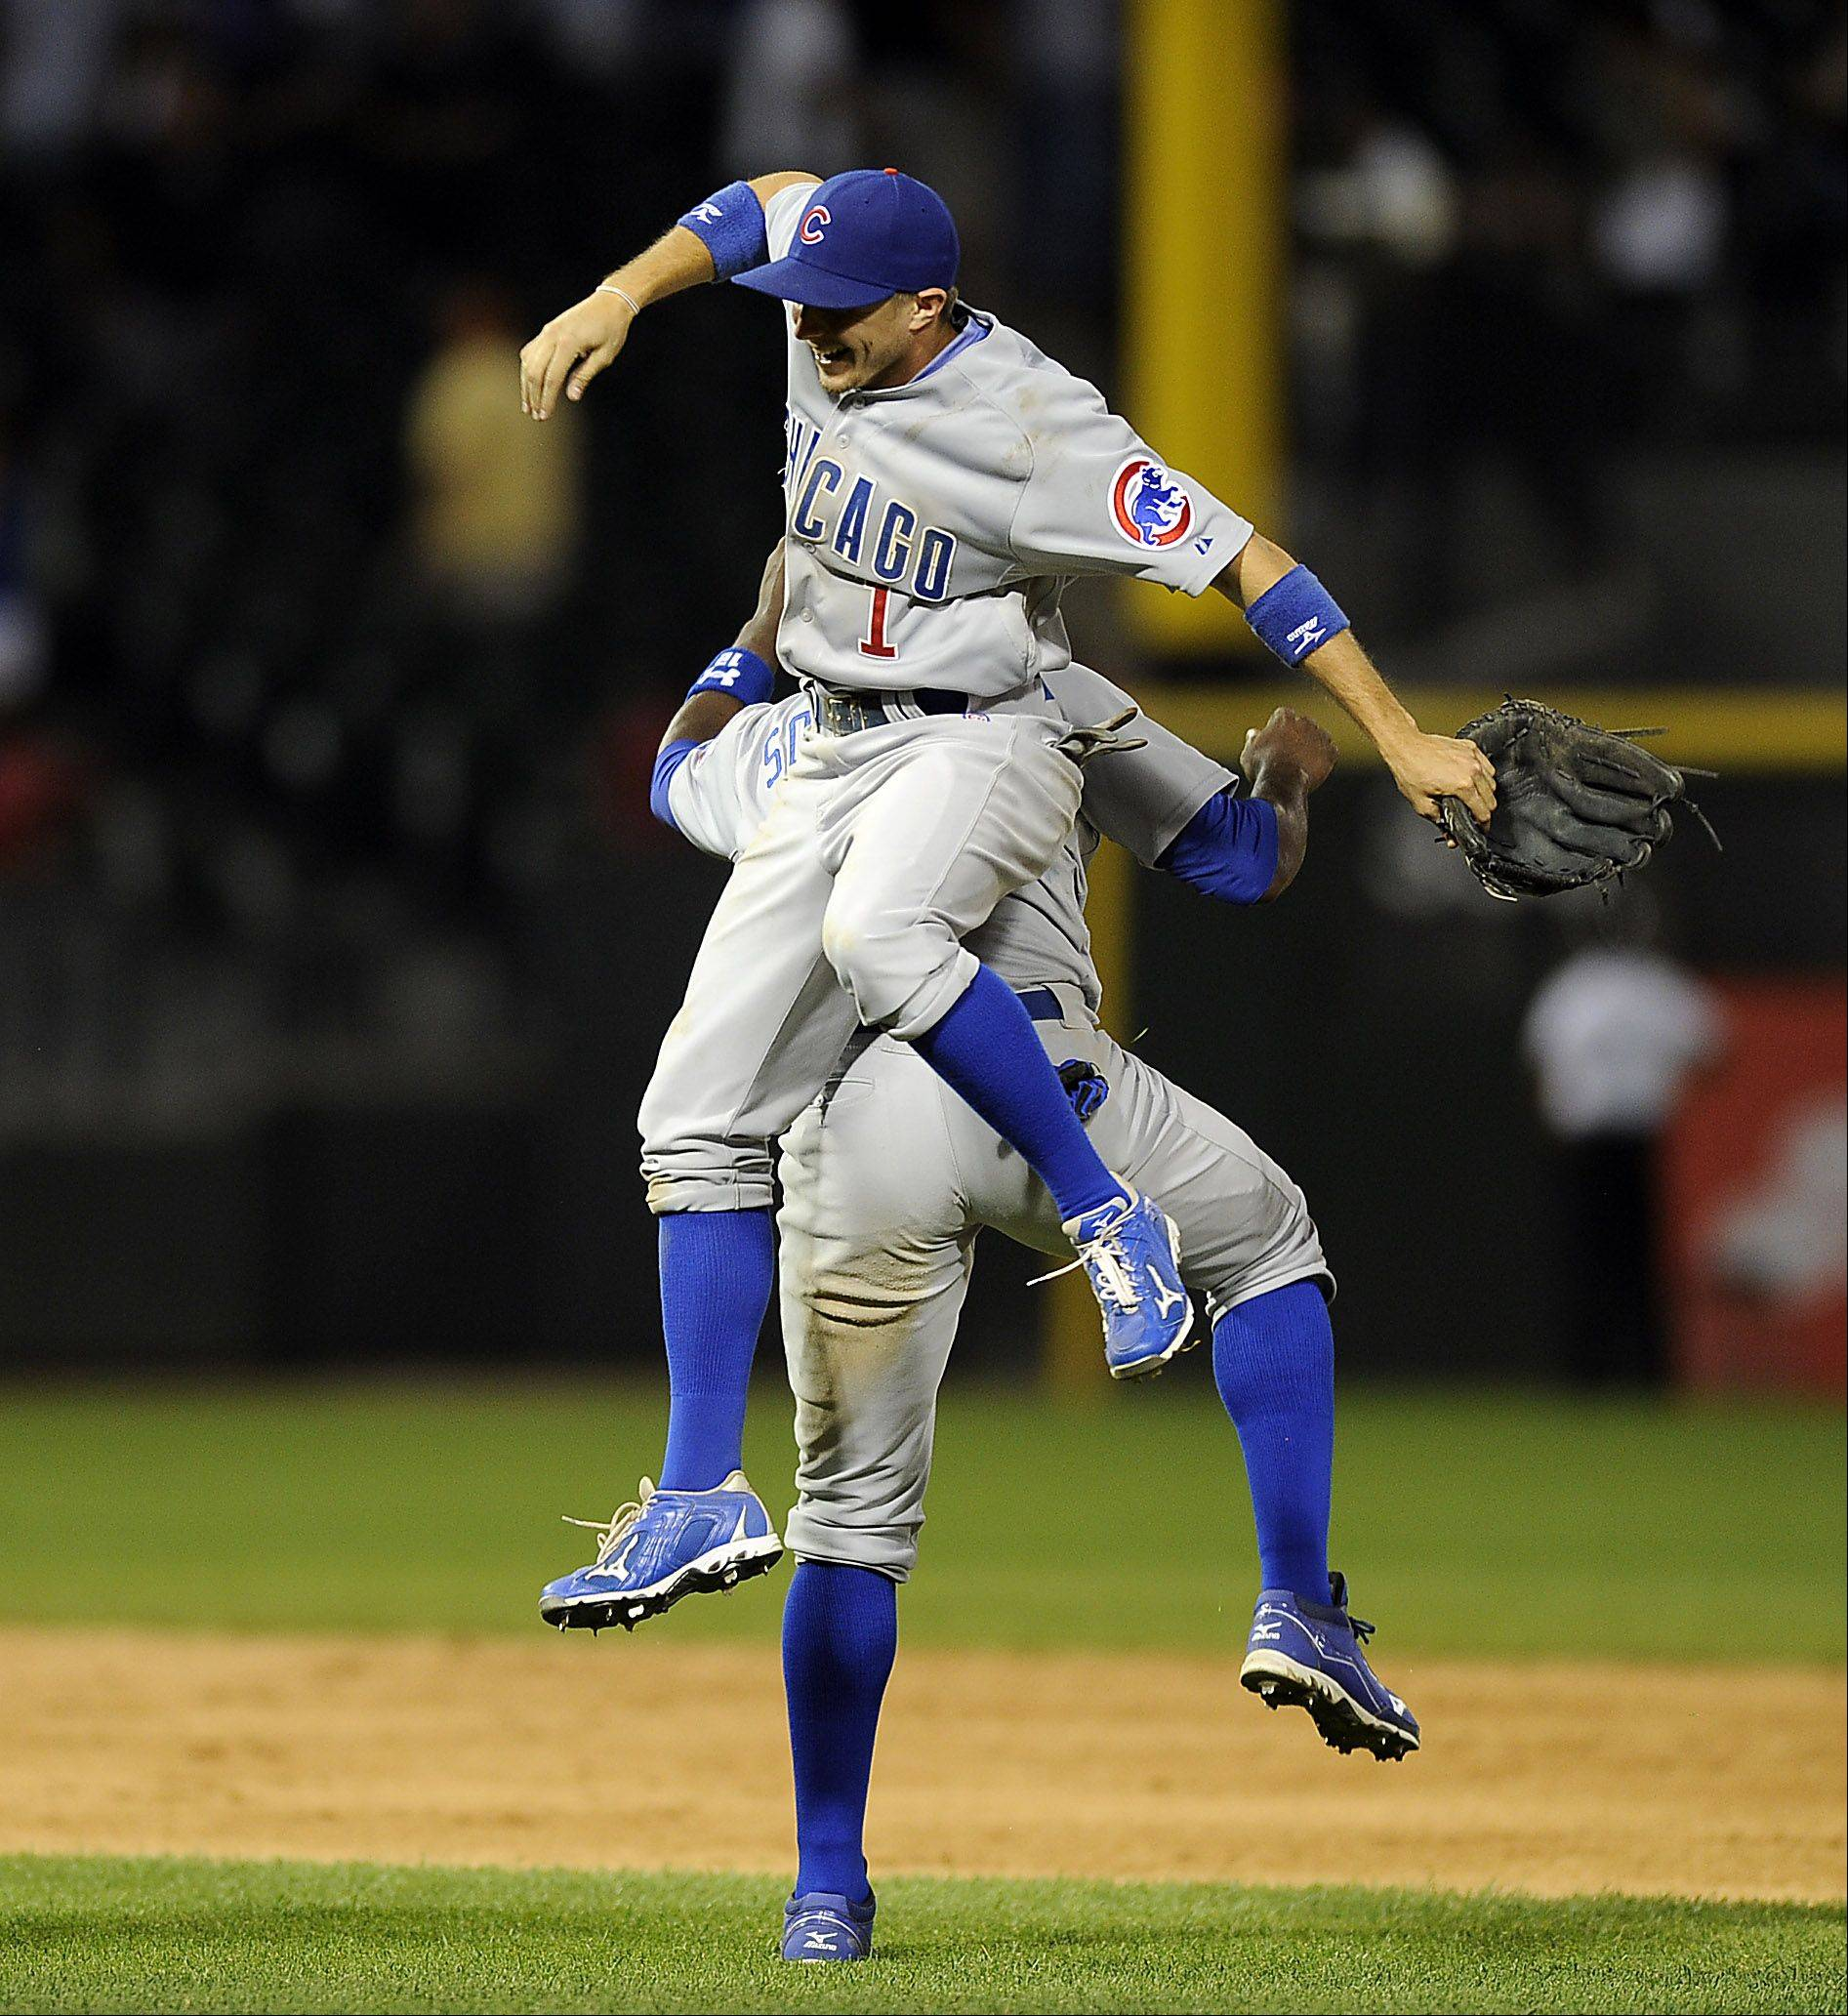 Chicago Cubs' Alfonso Soriano , back, celebrates with Tony Campana at the end of the game.